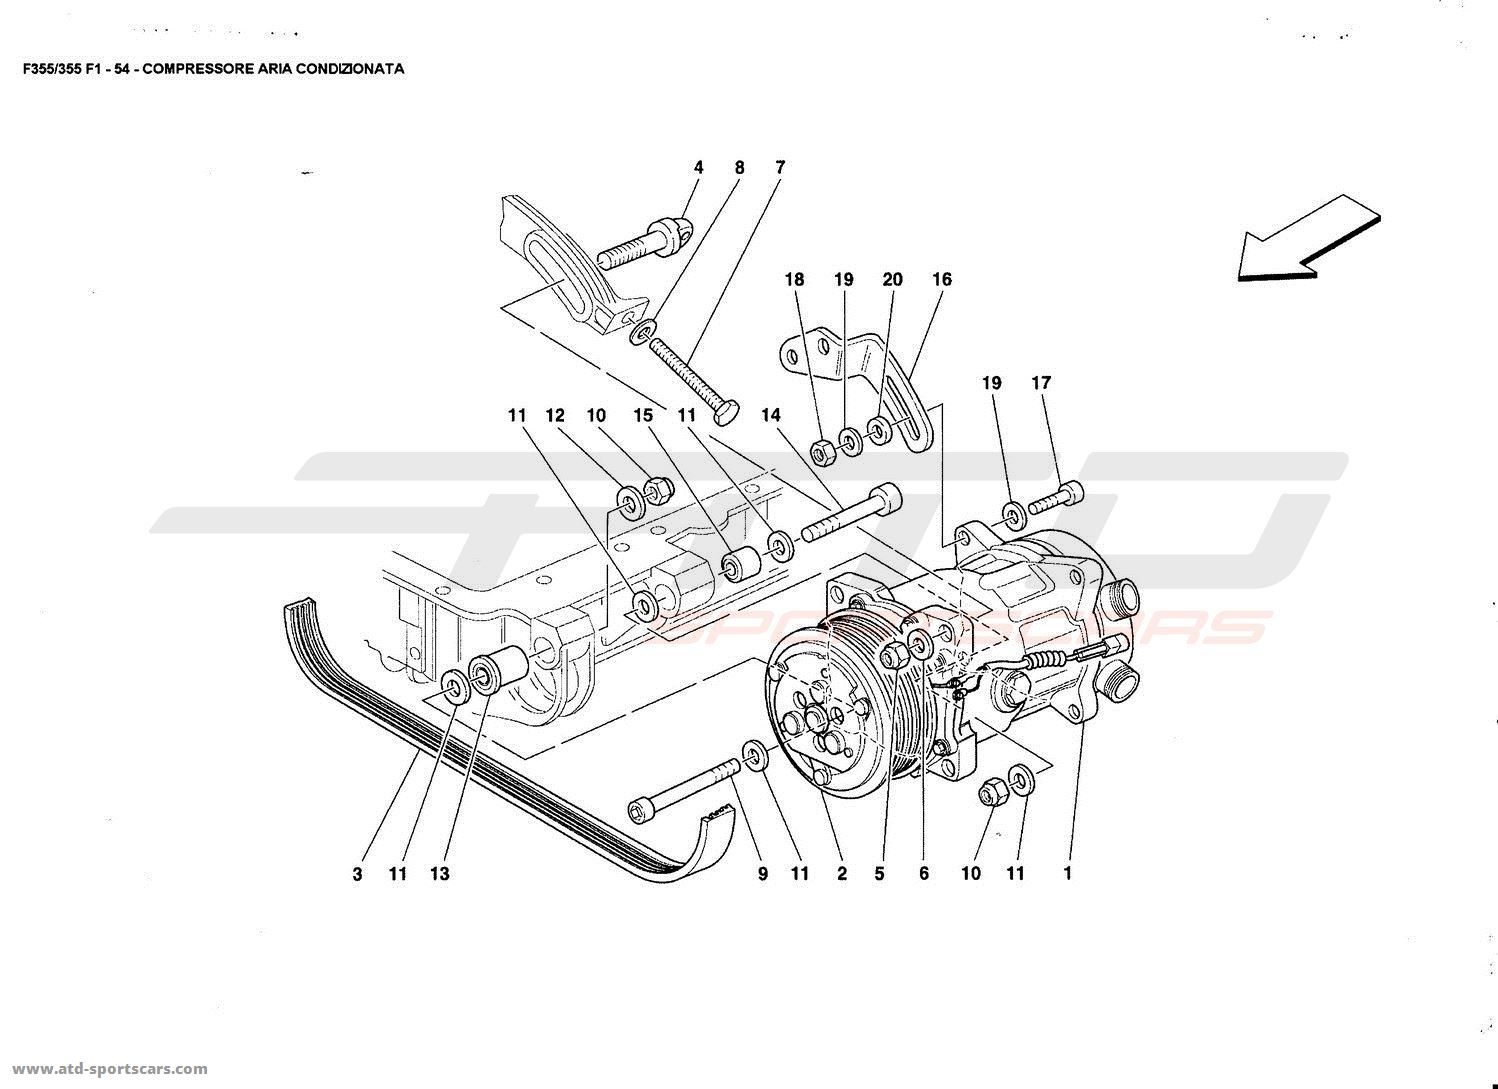 Piston Engine Diagram Crank Pin